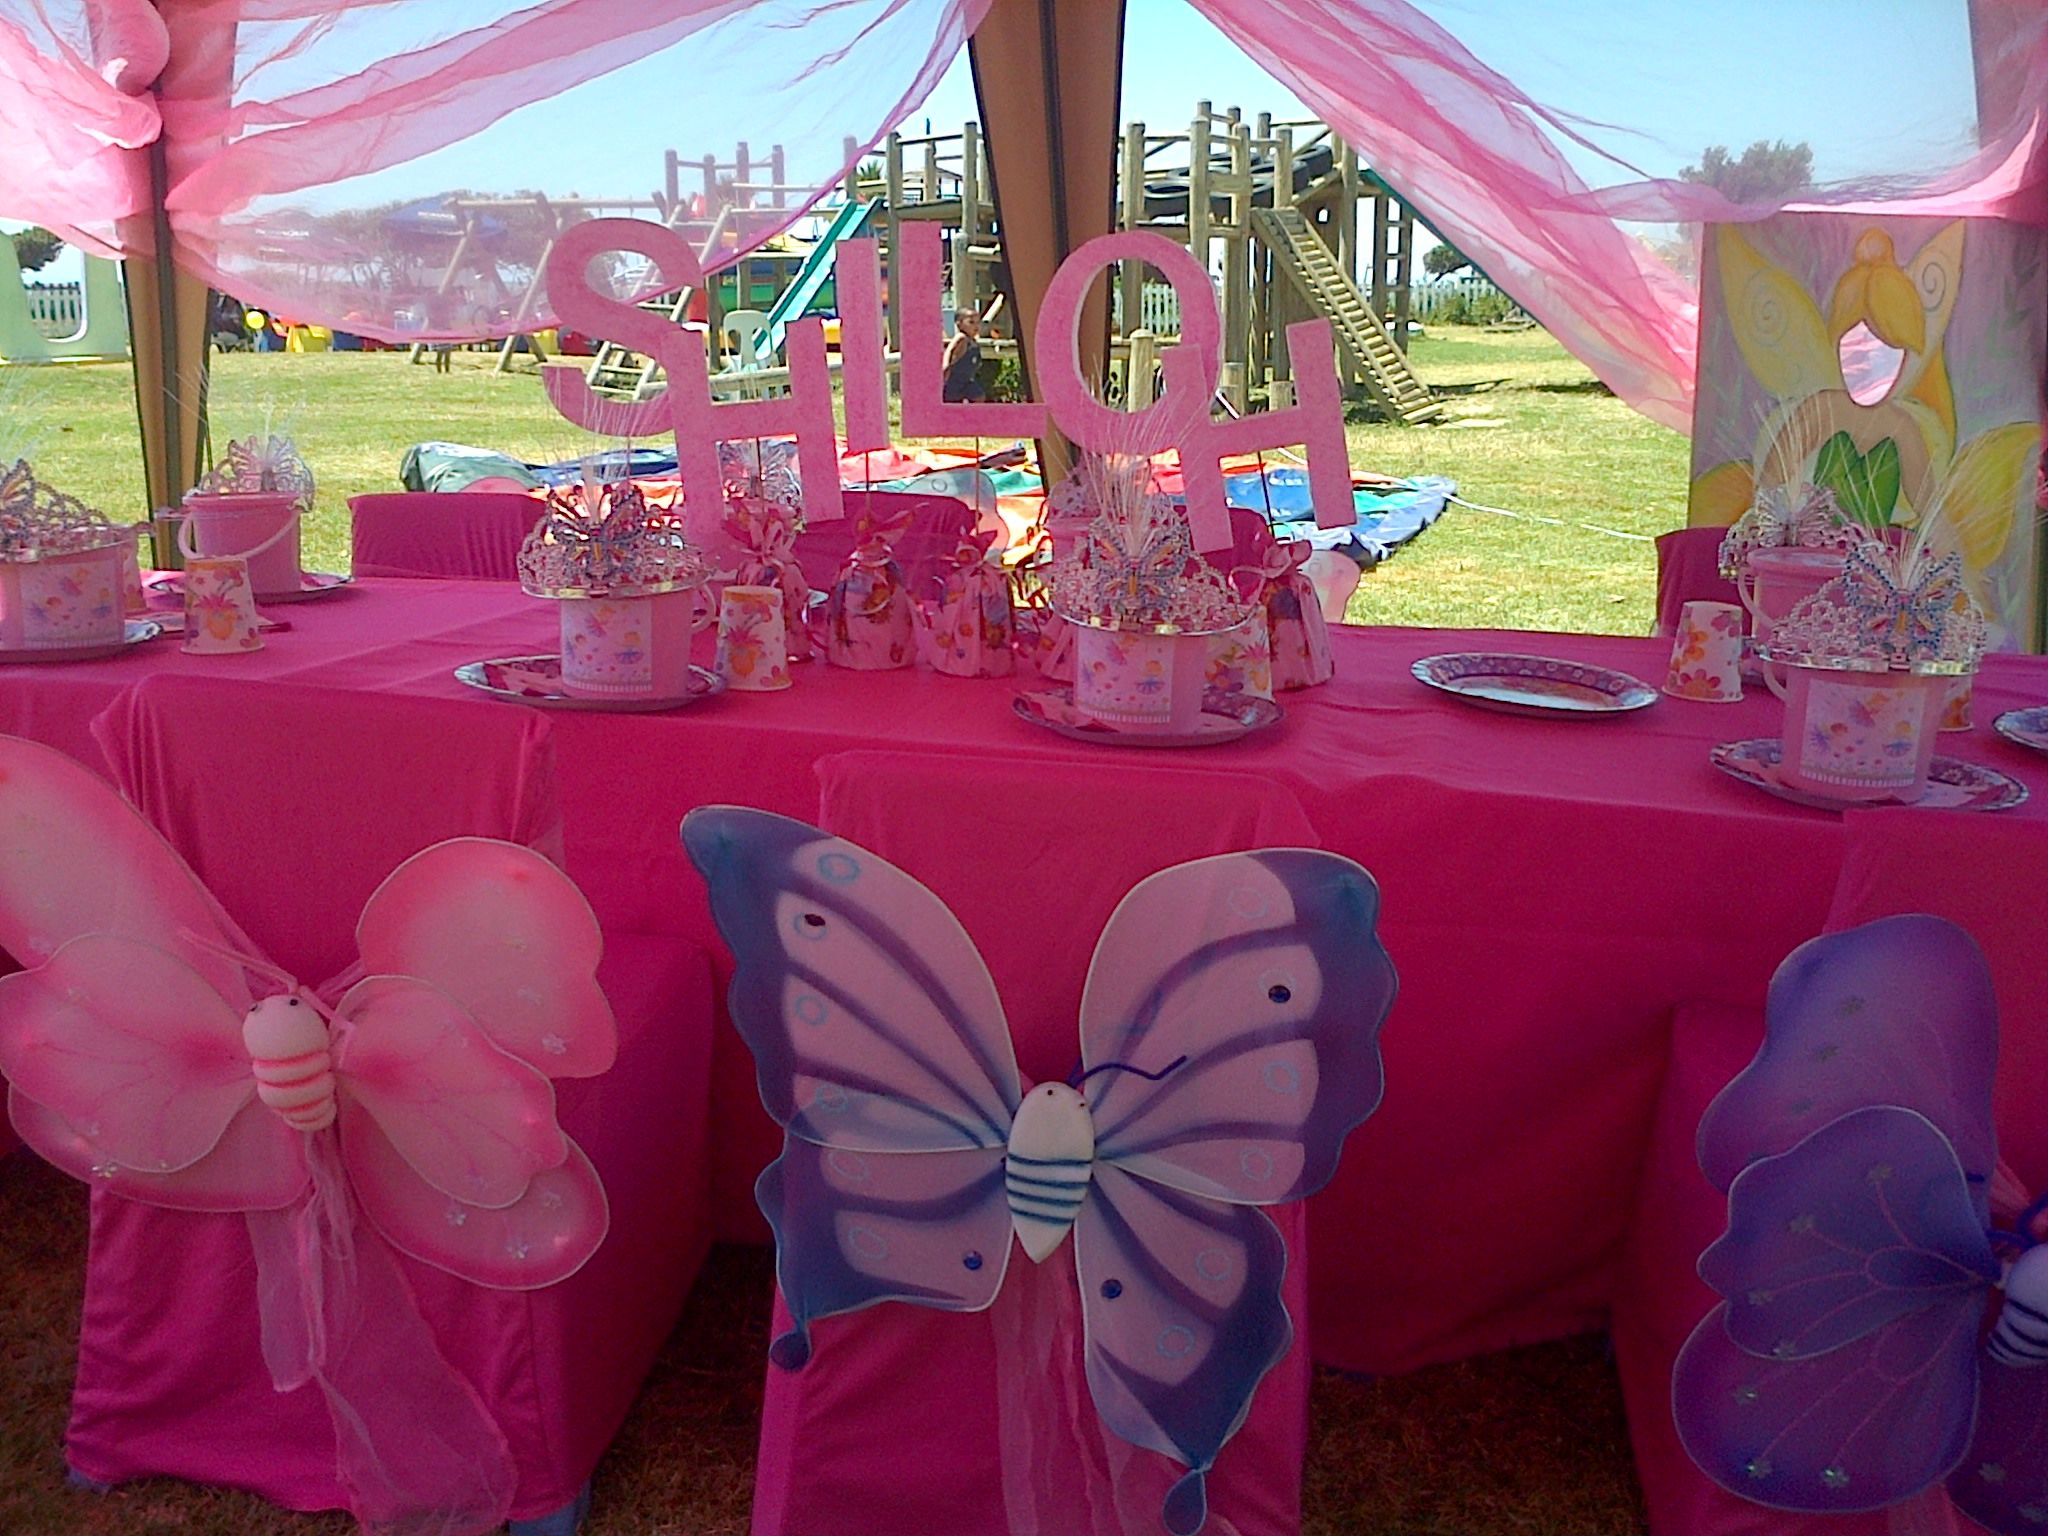 1000+ images about Theme party ideas for girls on Pinterest ...